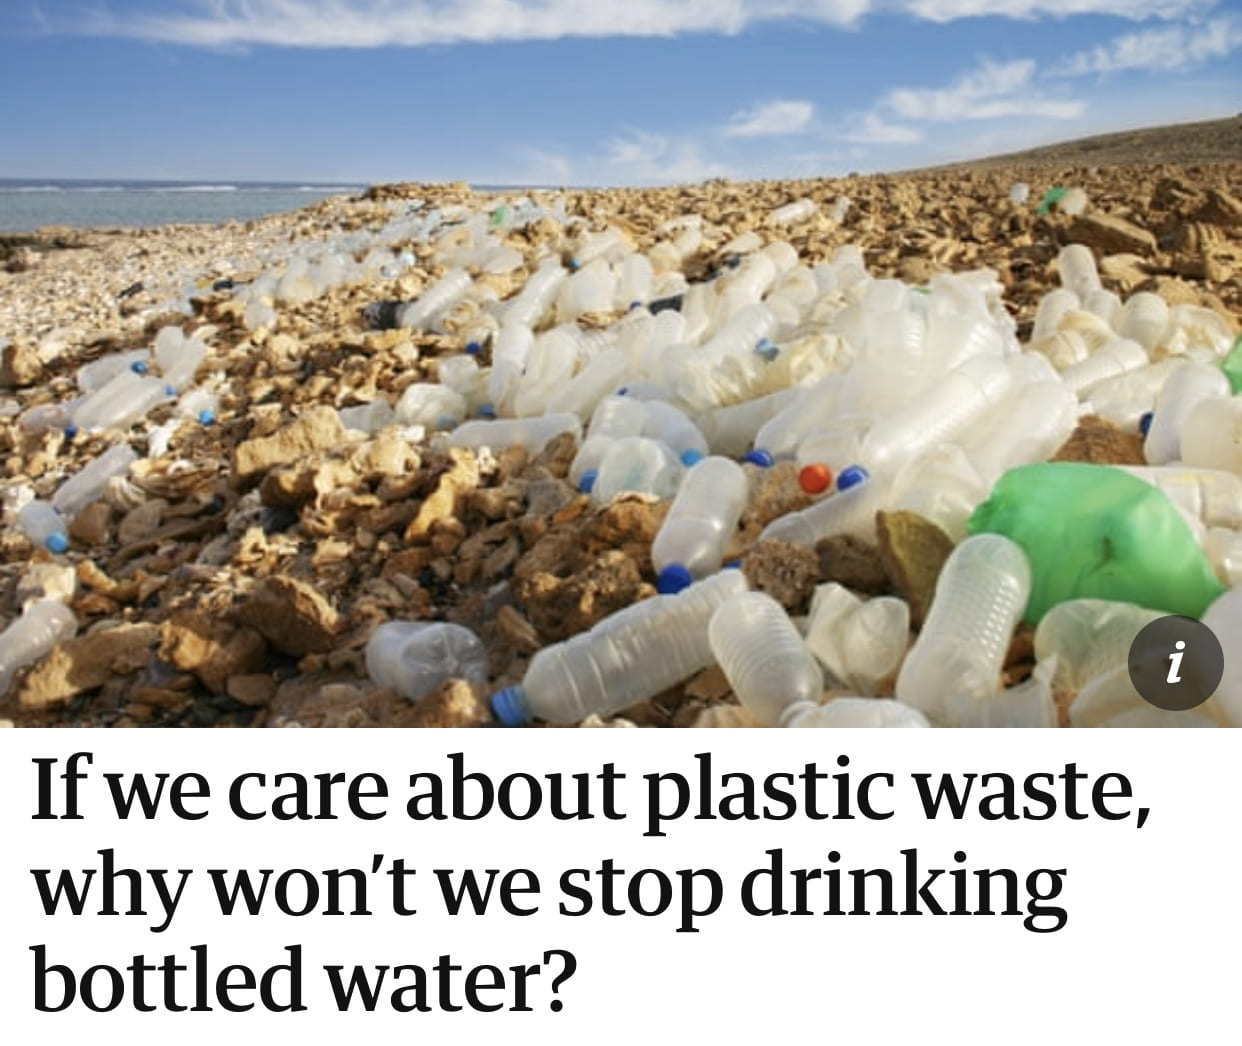 If we care about plastic waste, why won't we stop drinking bottled water? #sustainable system